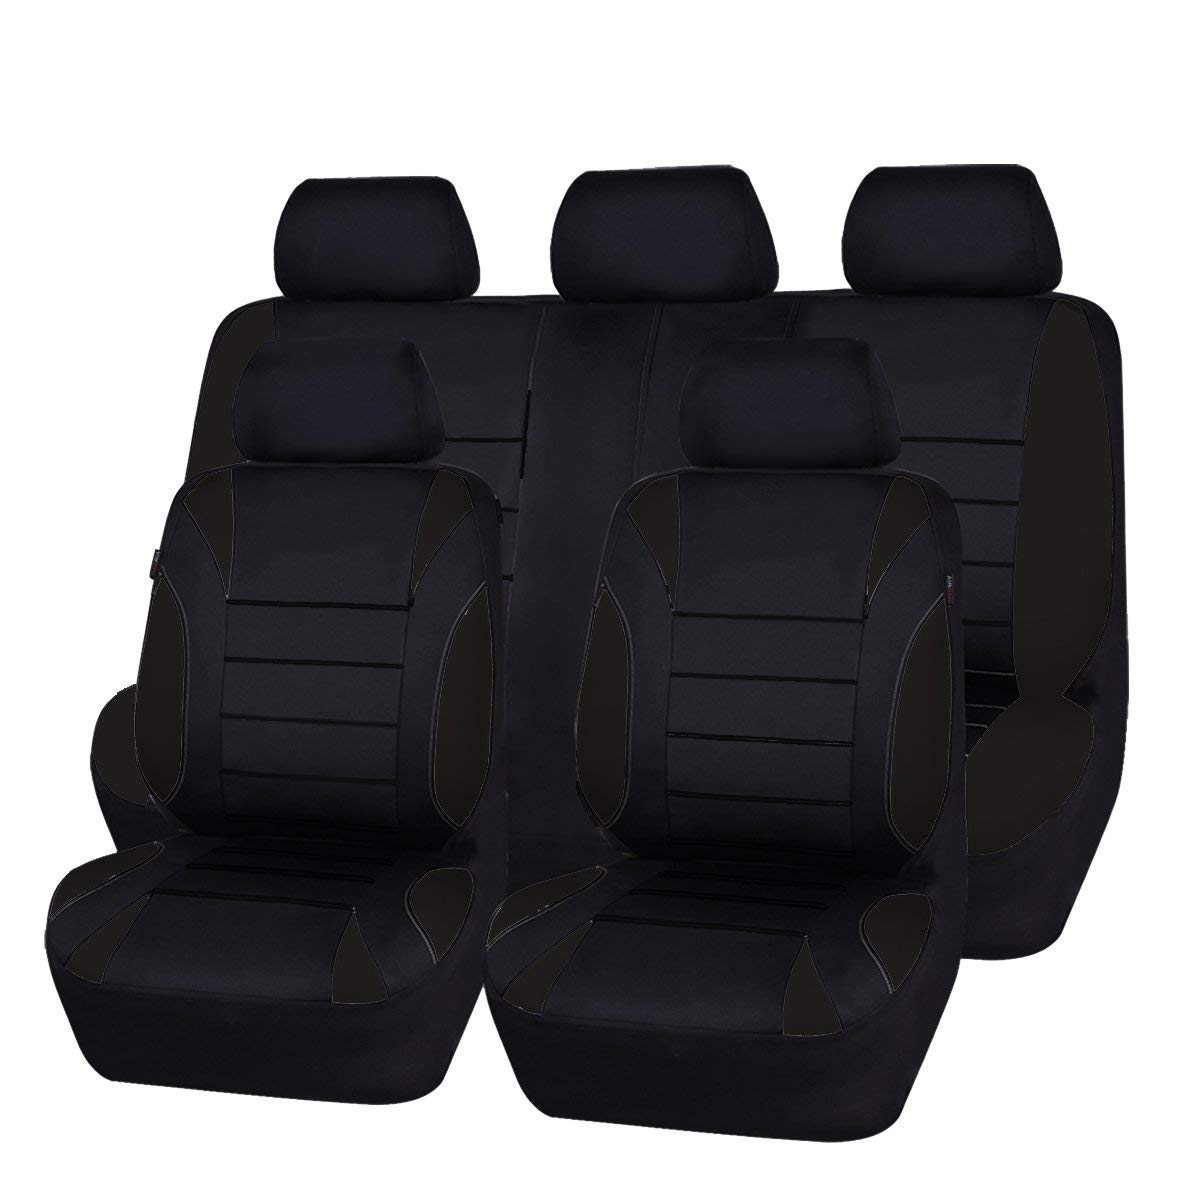 CAR PASS NEW ARRIVAL Waterproof Neoprene 11 Piece Universal Fit Car Seat Cover